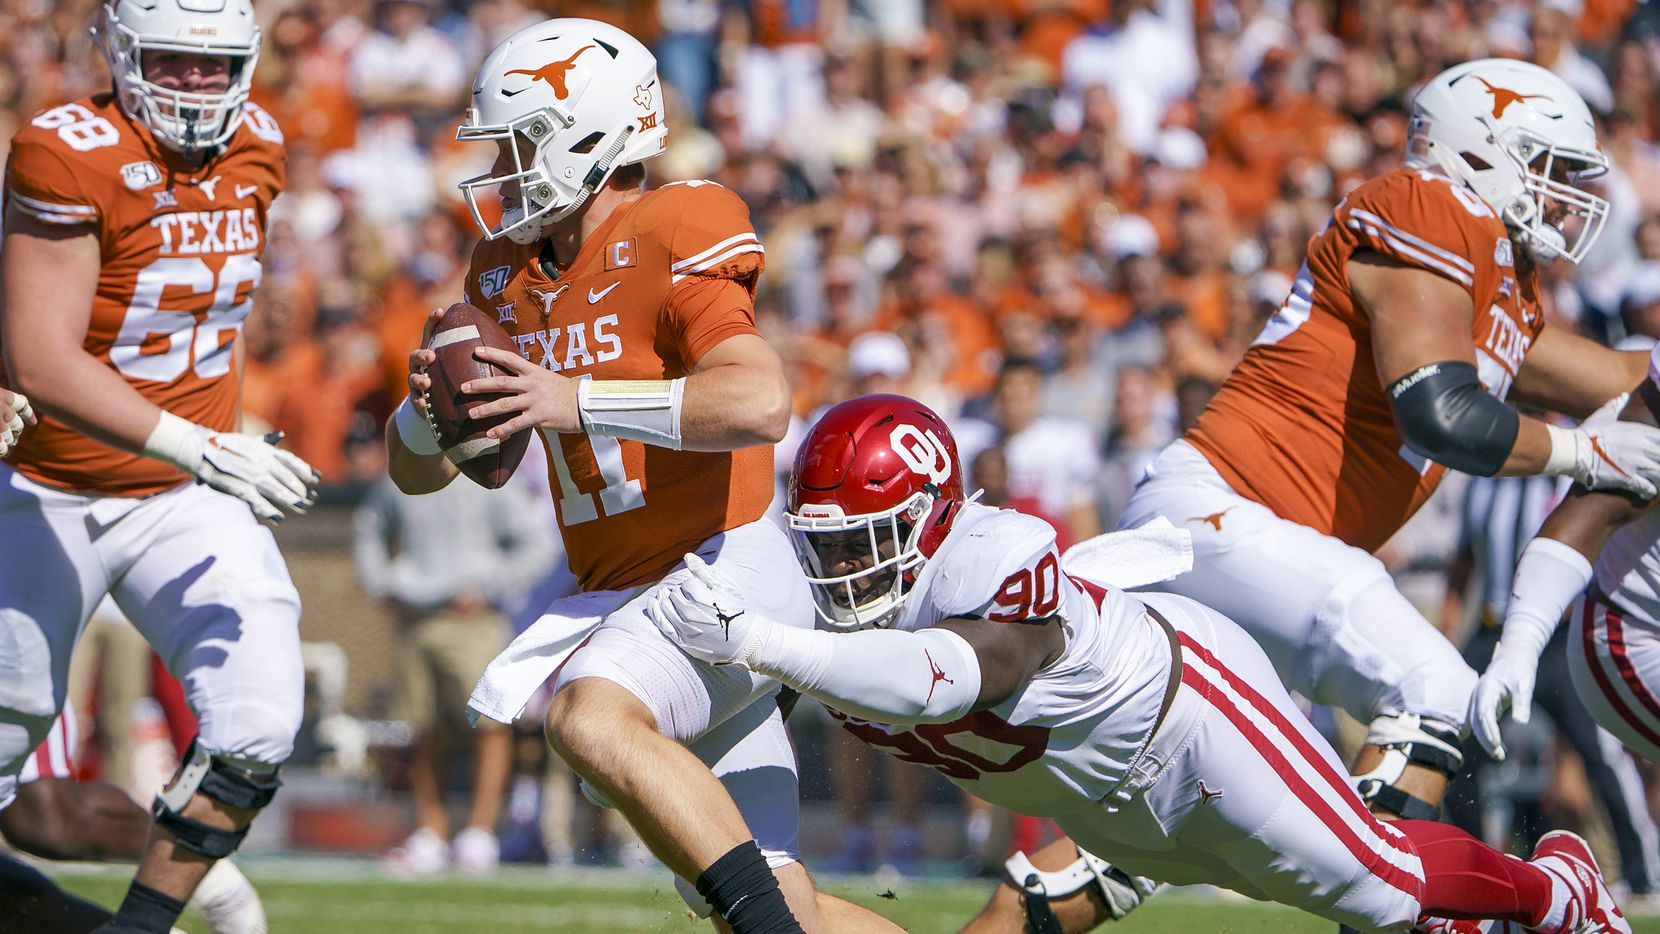 FILE - Texas quarterback Sam Ehlinger (11) is sacked by Oklahoma defensive lineman Neville Gallimore (90) during the first half of an NCAA football game at the Cotton Bowl on Saturday, Oct. 12, 2019, in Dallas.